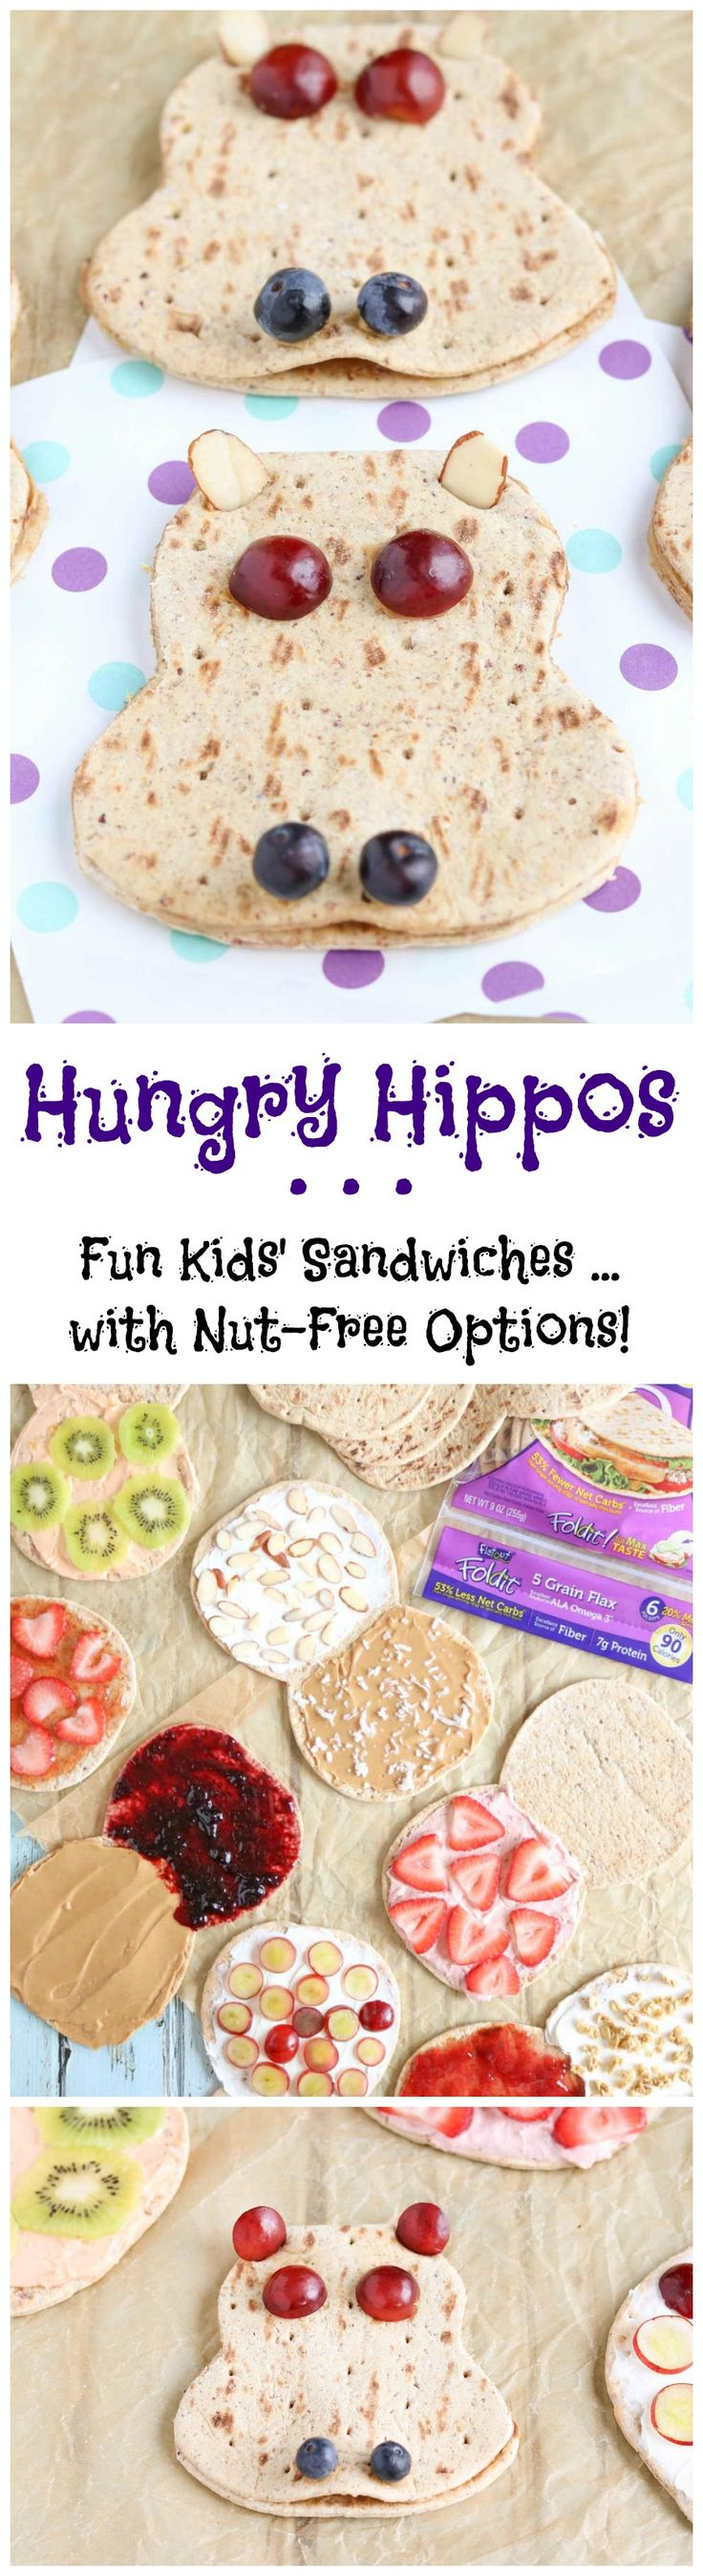 "Kids will love this adorable sandwich recipe! Easy and so adaptable! Use it as a fun ""edible art project"" ... or as a special little lunch box surprise! Choose basic peanut butter and jelly, or one of our other creative filling ideas (even lots of nut-free options for school lunches)! A kid friendly way to help kids eat healthy - loaded with protein and fiber, plus a little fresh fruit, too! A healthy kids' lunch idea they'll love, and so will you! {ad} 